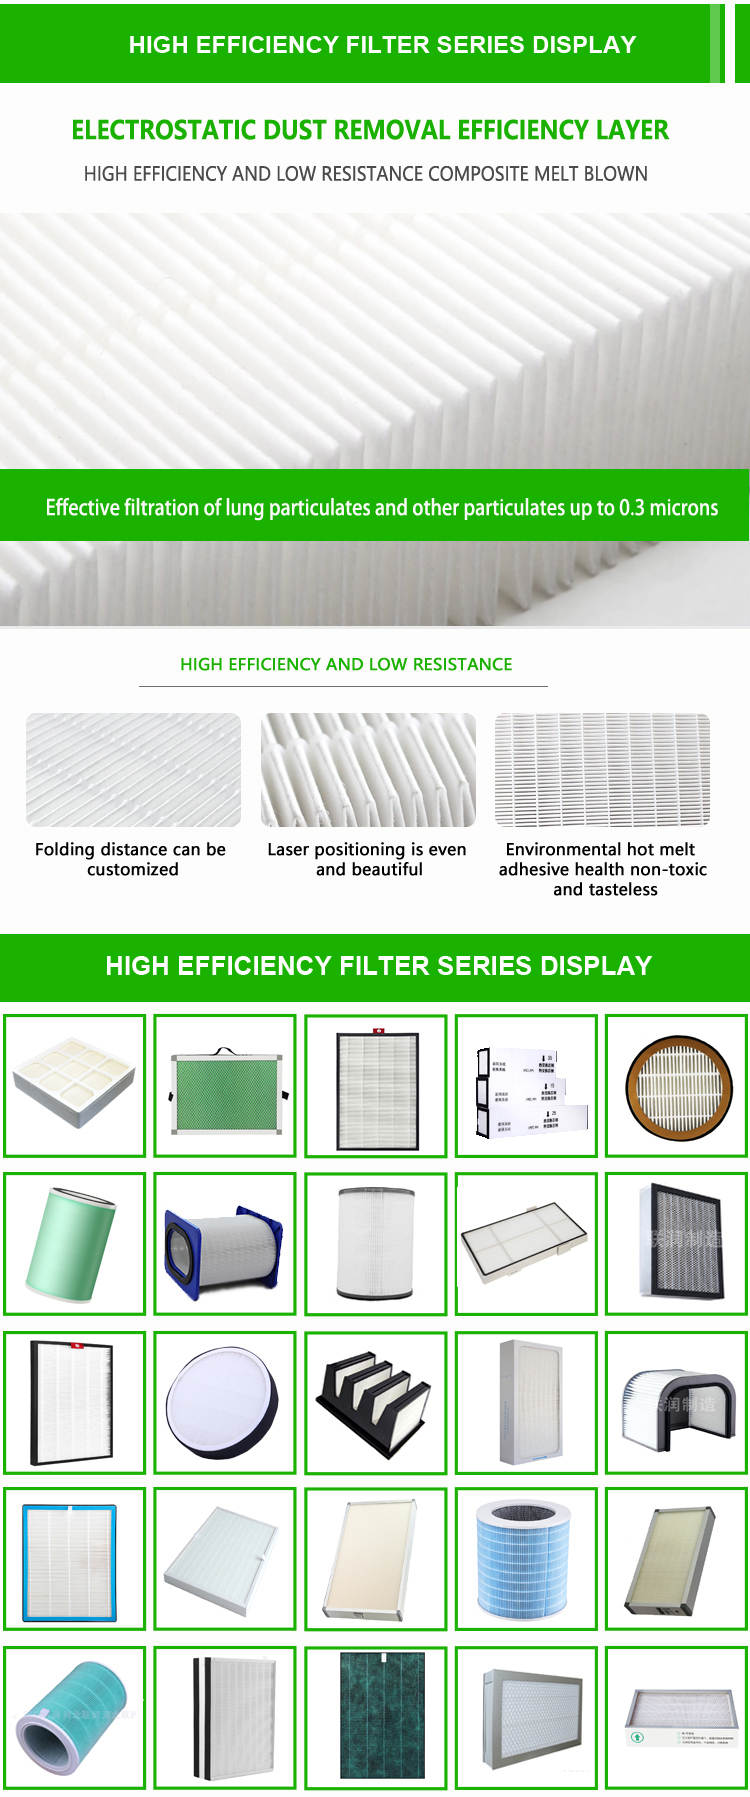 High efficiency filter series display